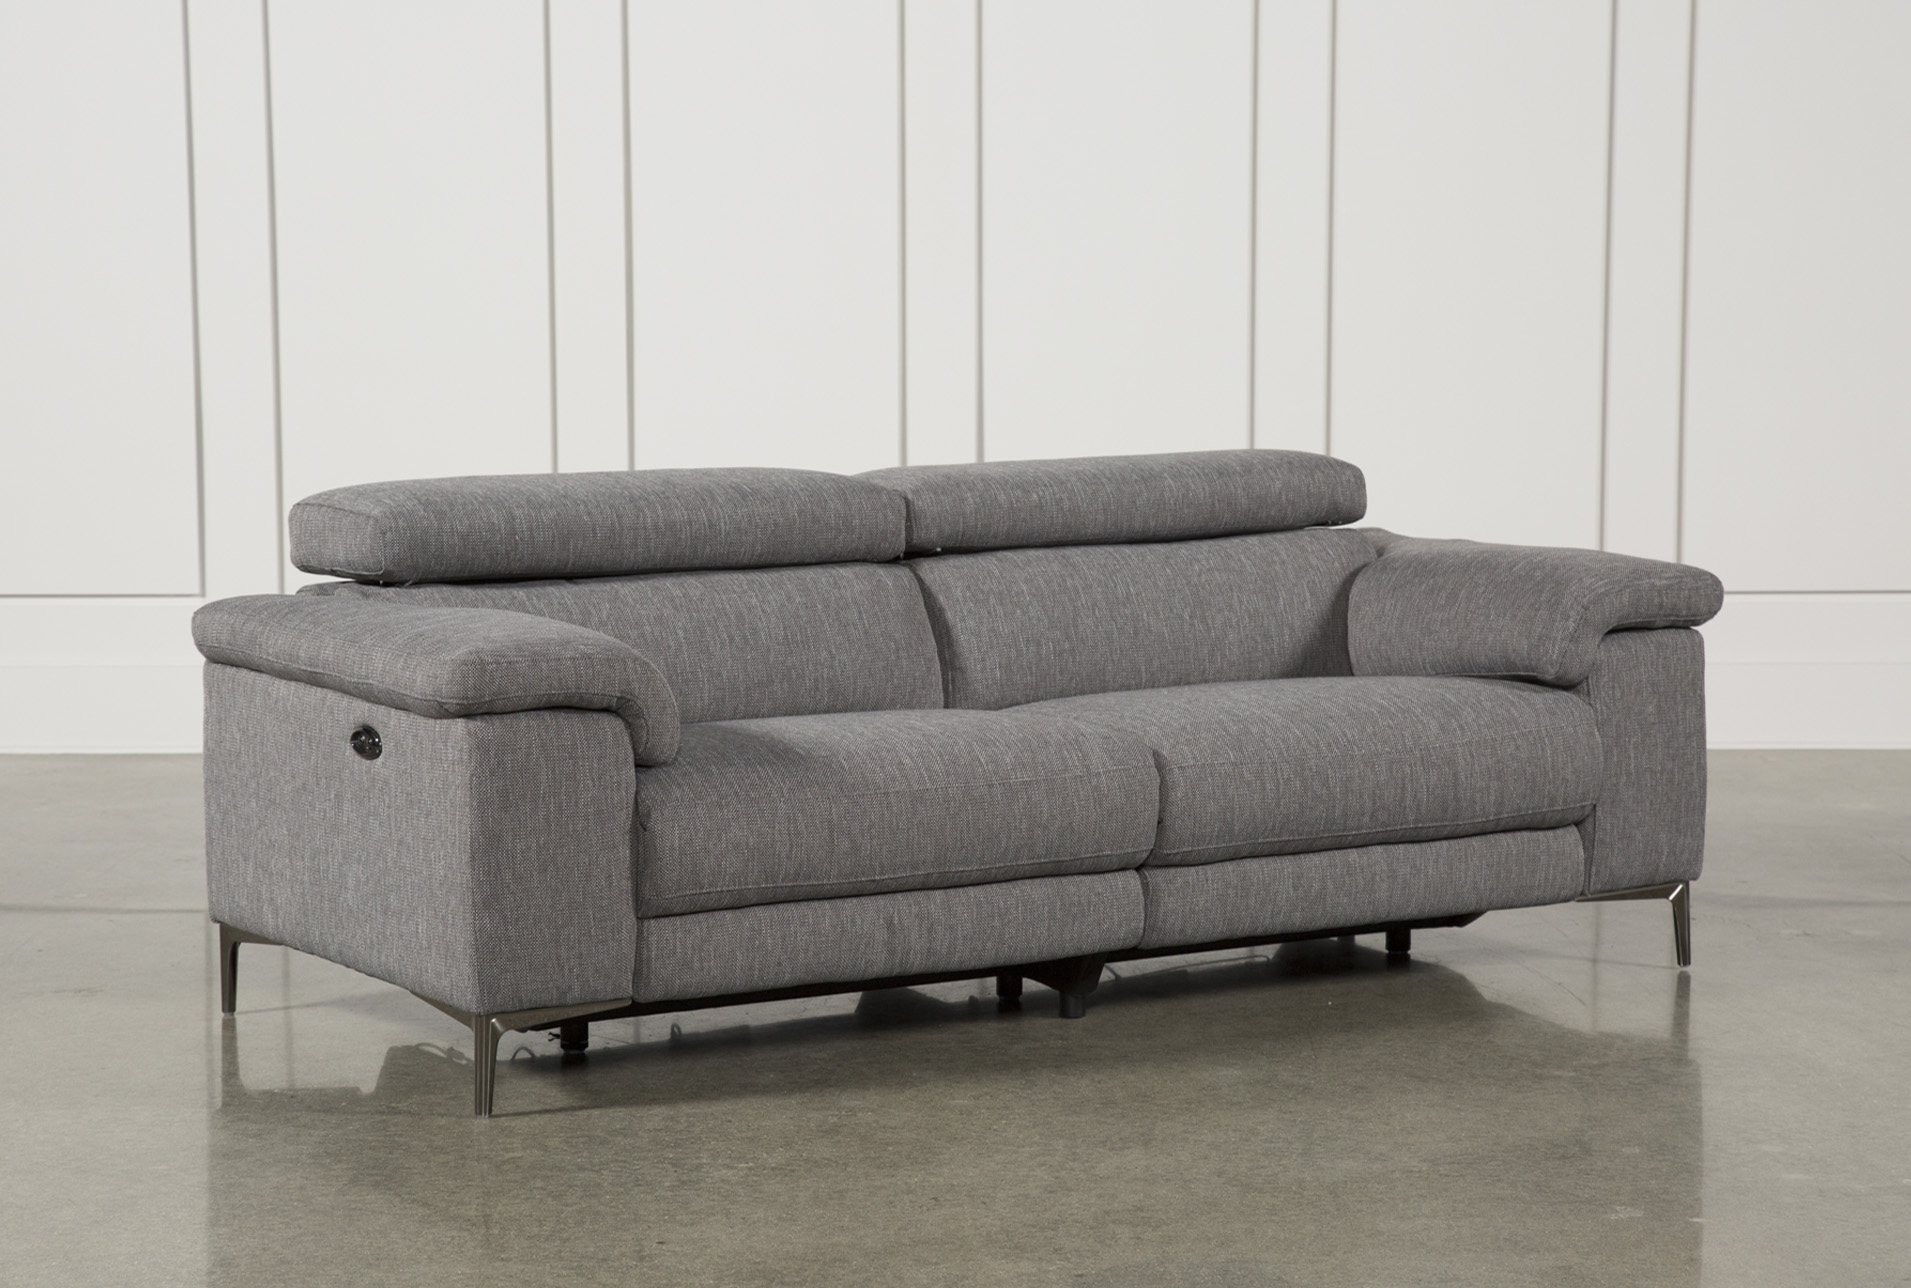 Talin Grey Power Reclining Sofa W/Usb (Qty: 1) has been successfully added  to your Cart.